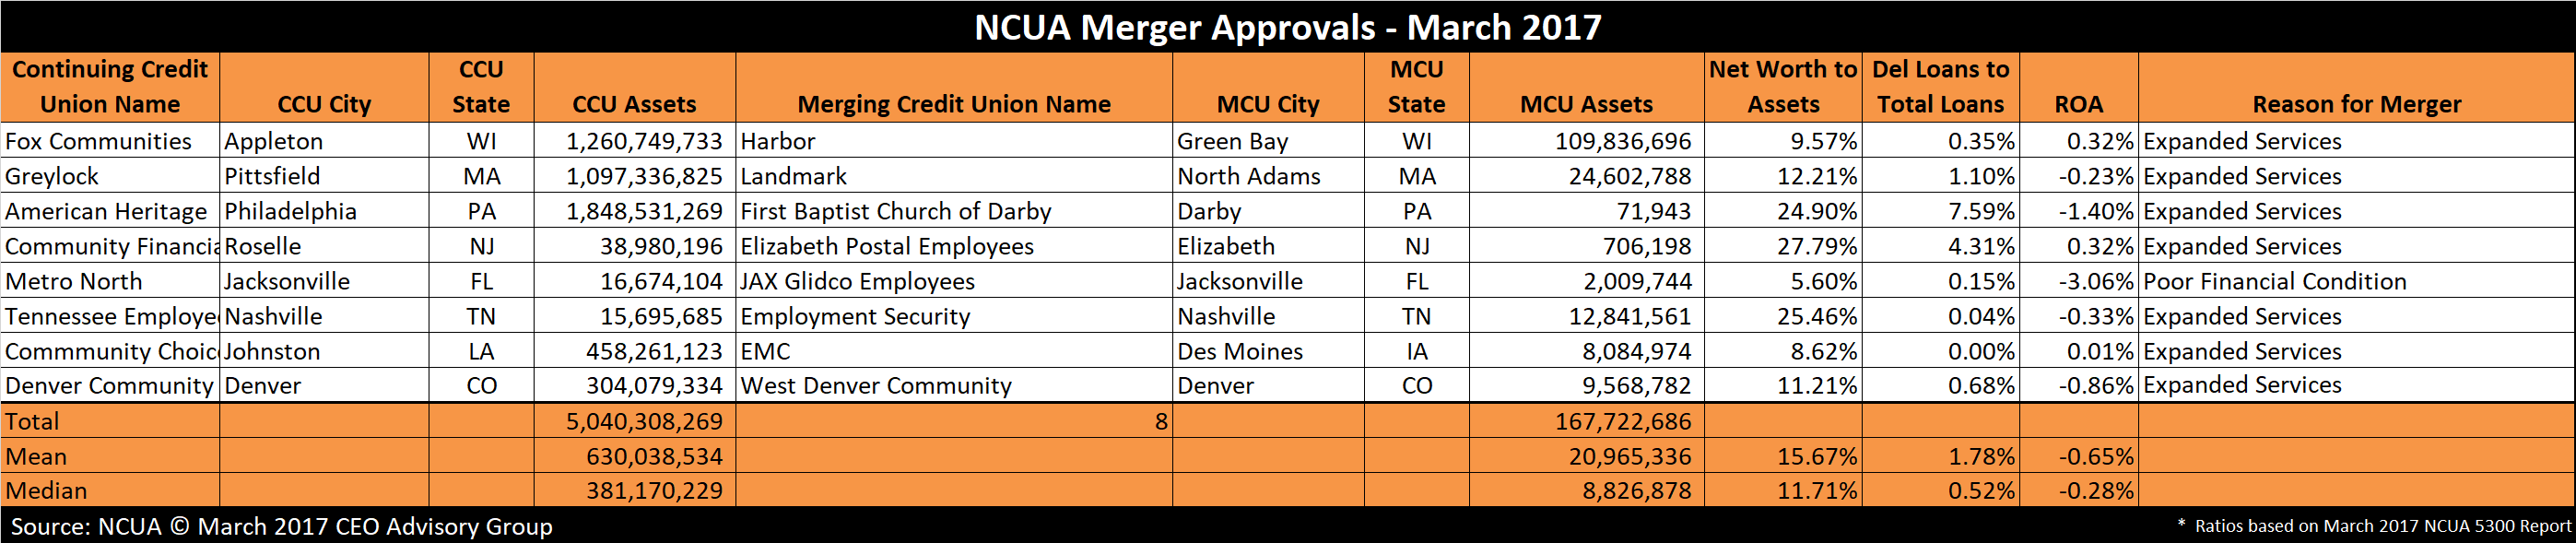 Credit Union Mergers March 2017